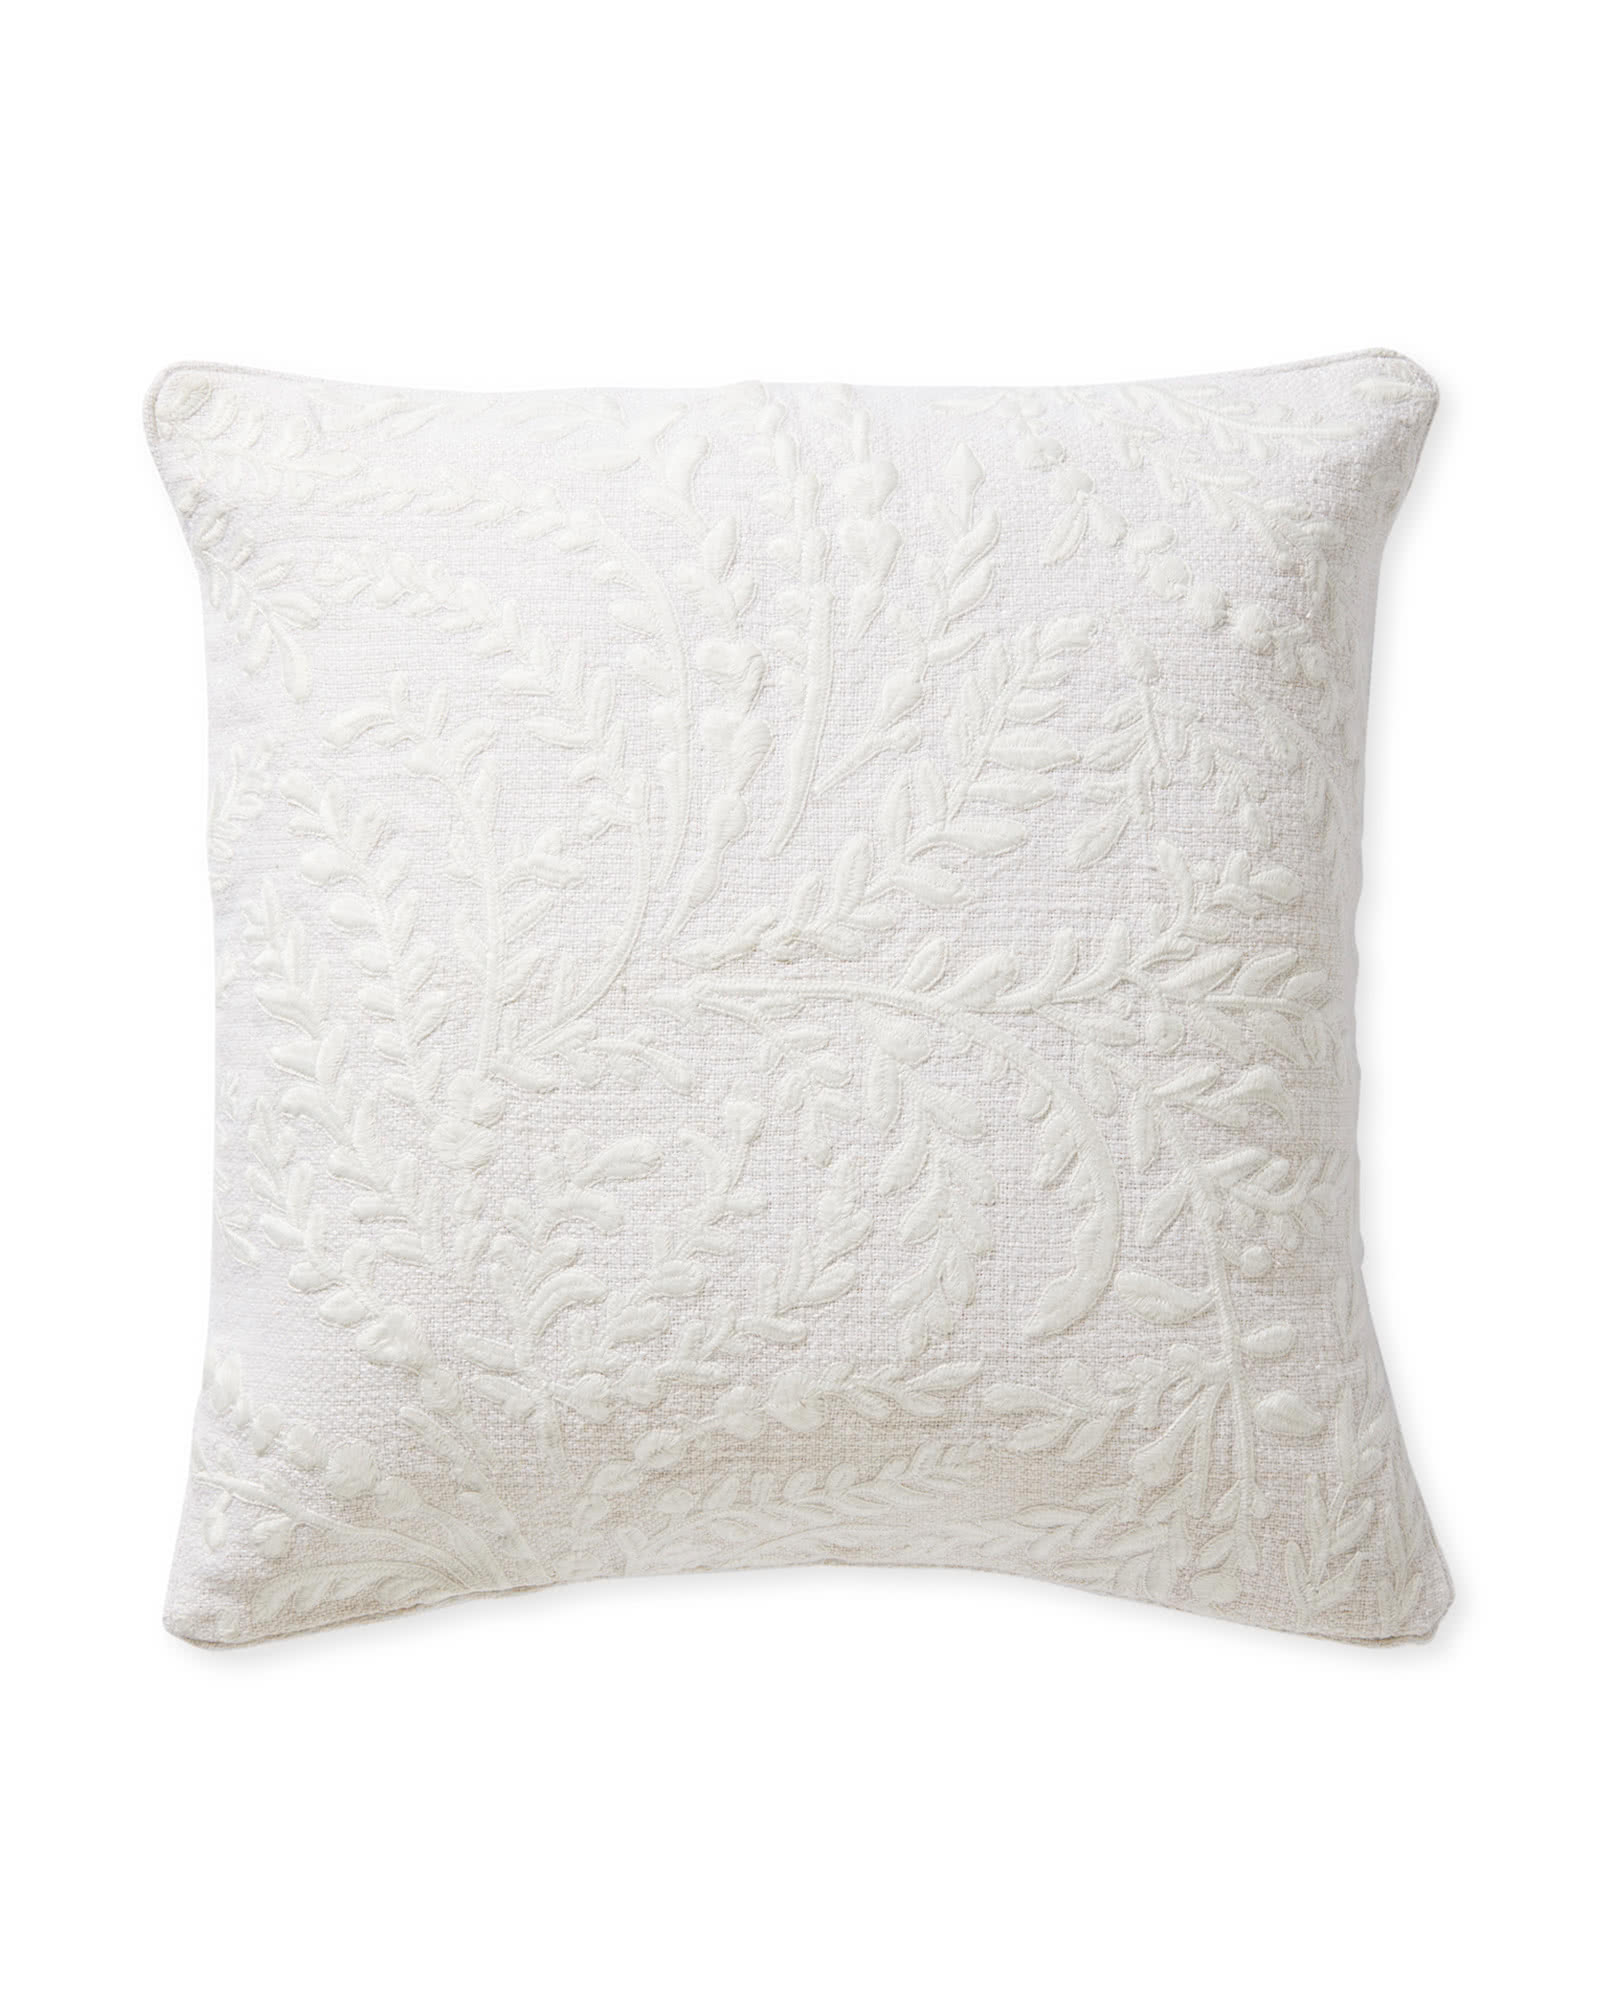 Brookings Pillow Cover,